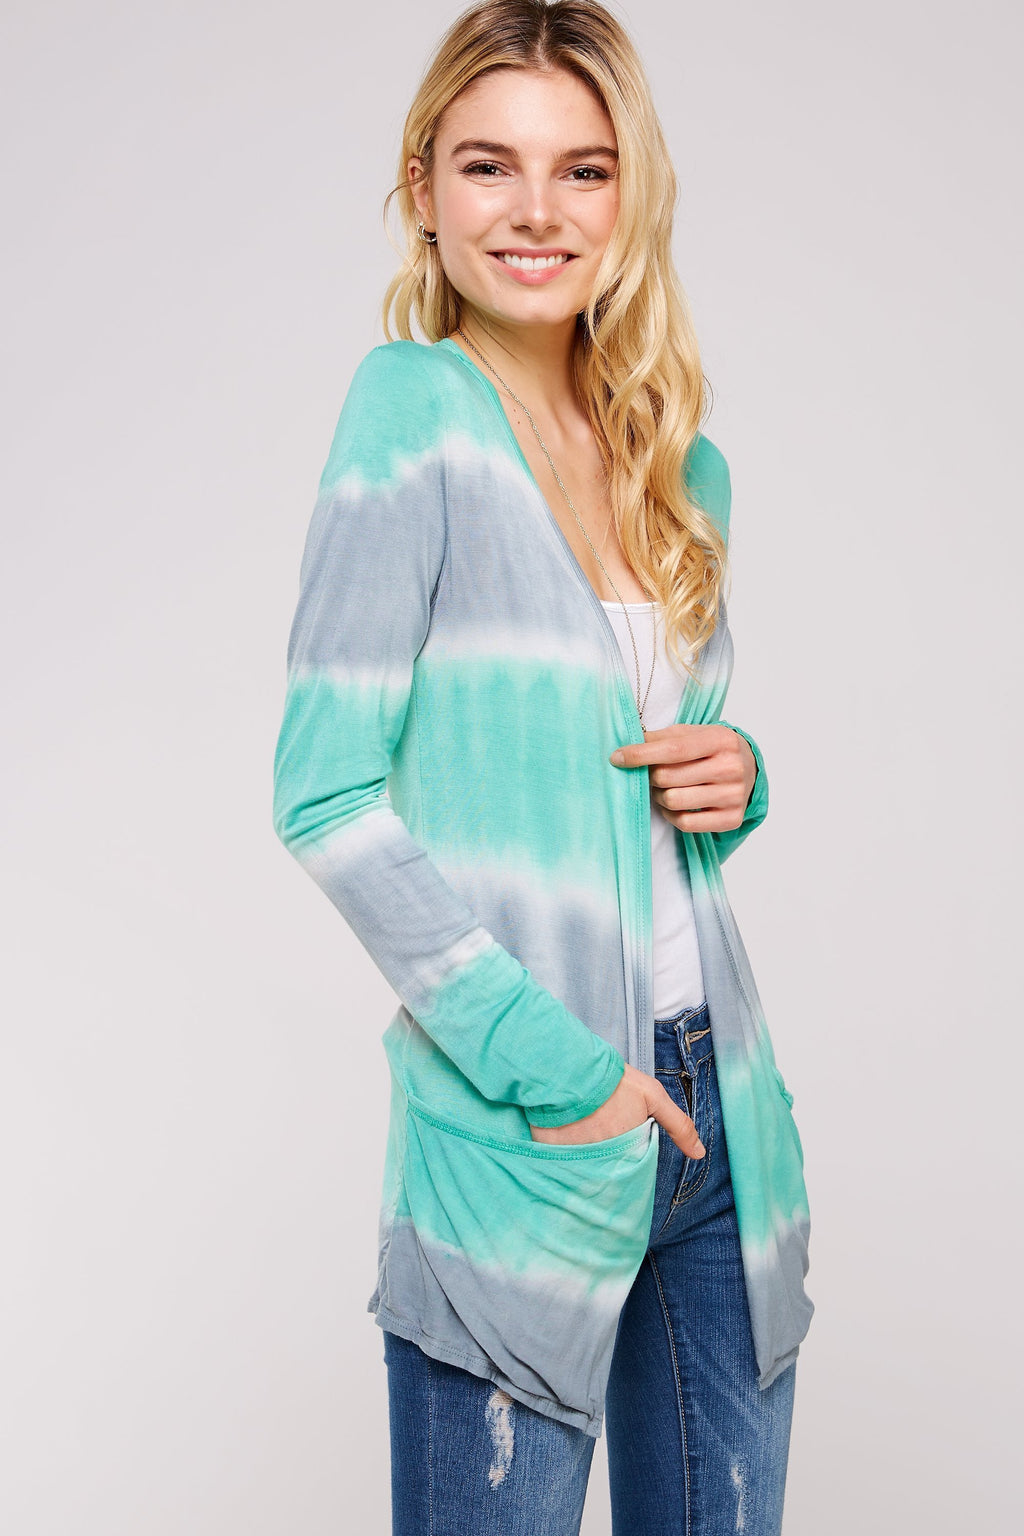 Wholesale Clothing, Online Wholesale Clothing, Women Clothing, Bohemian, Free People, tiedye, specialty wash, wholesale seller, wholesale women clothing shop, gypsy look, USA made, URBAN X APPAREL-CARDIGANS-UCR3036, fashiontrend2019